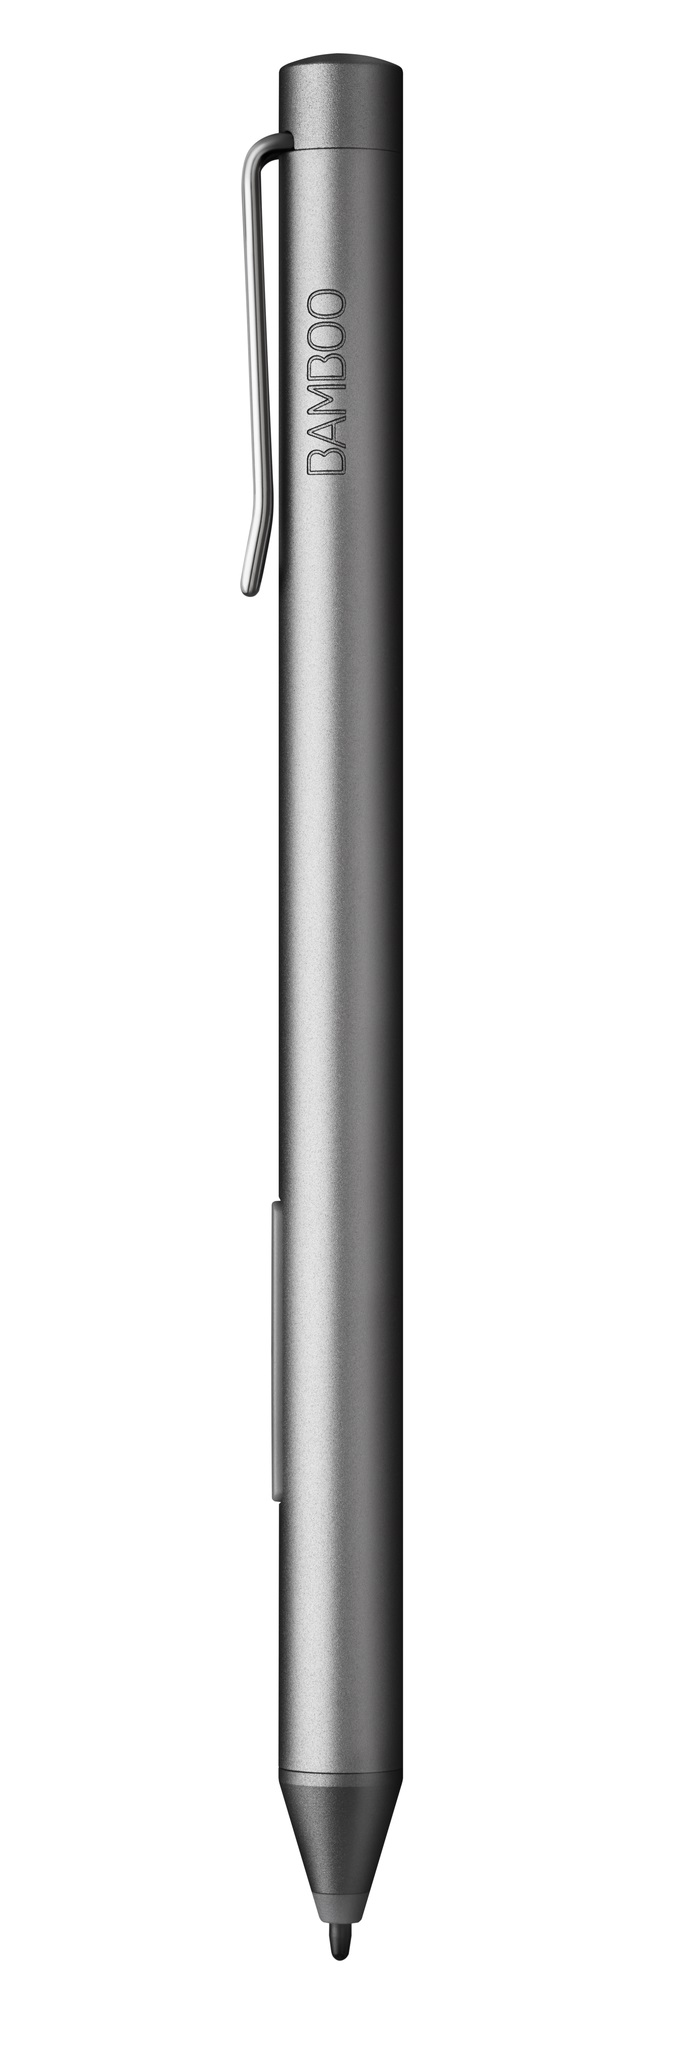 Wacom Bamboo Ink, 2nd, Gray, stylus